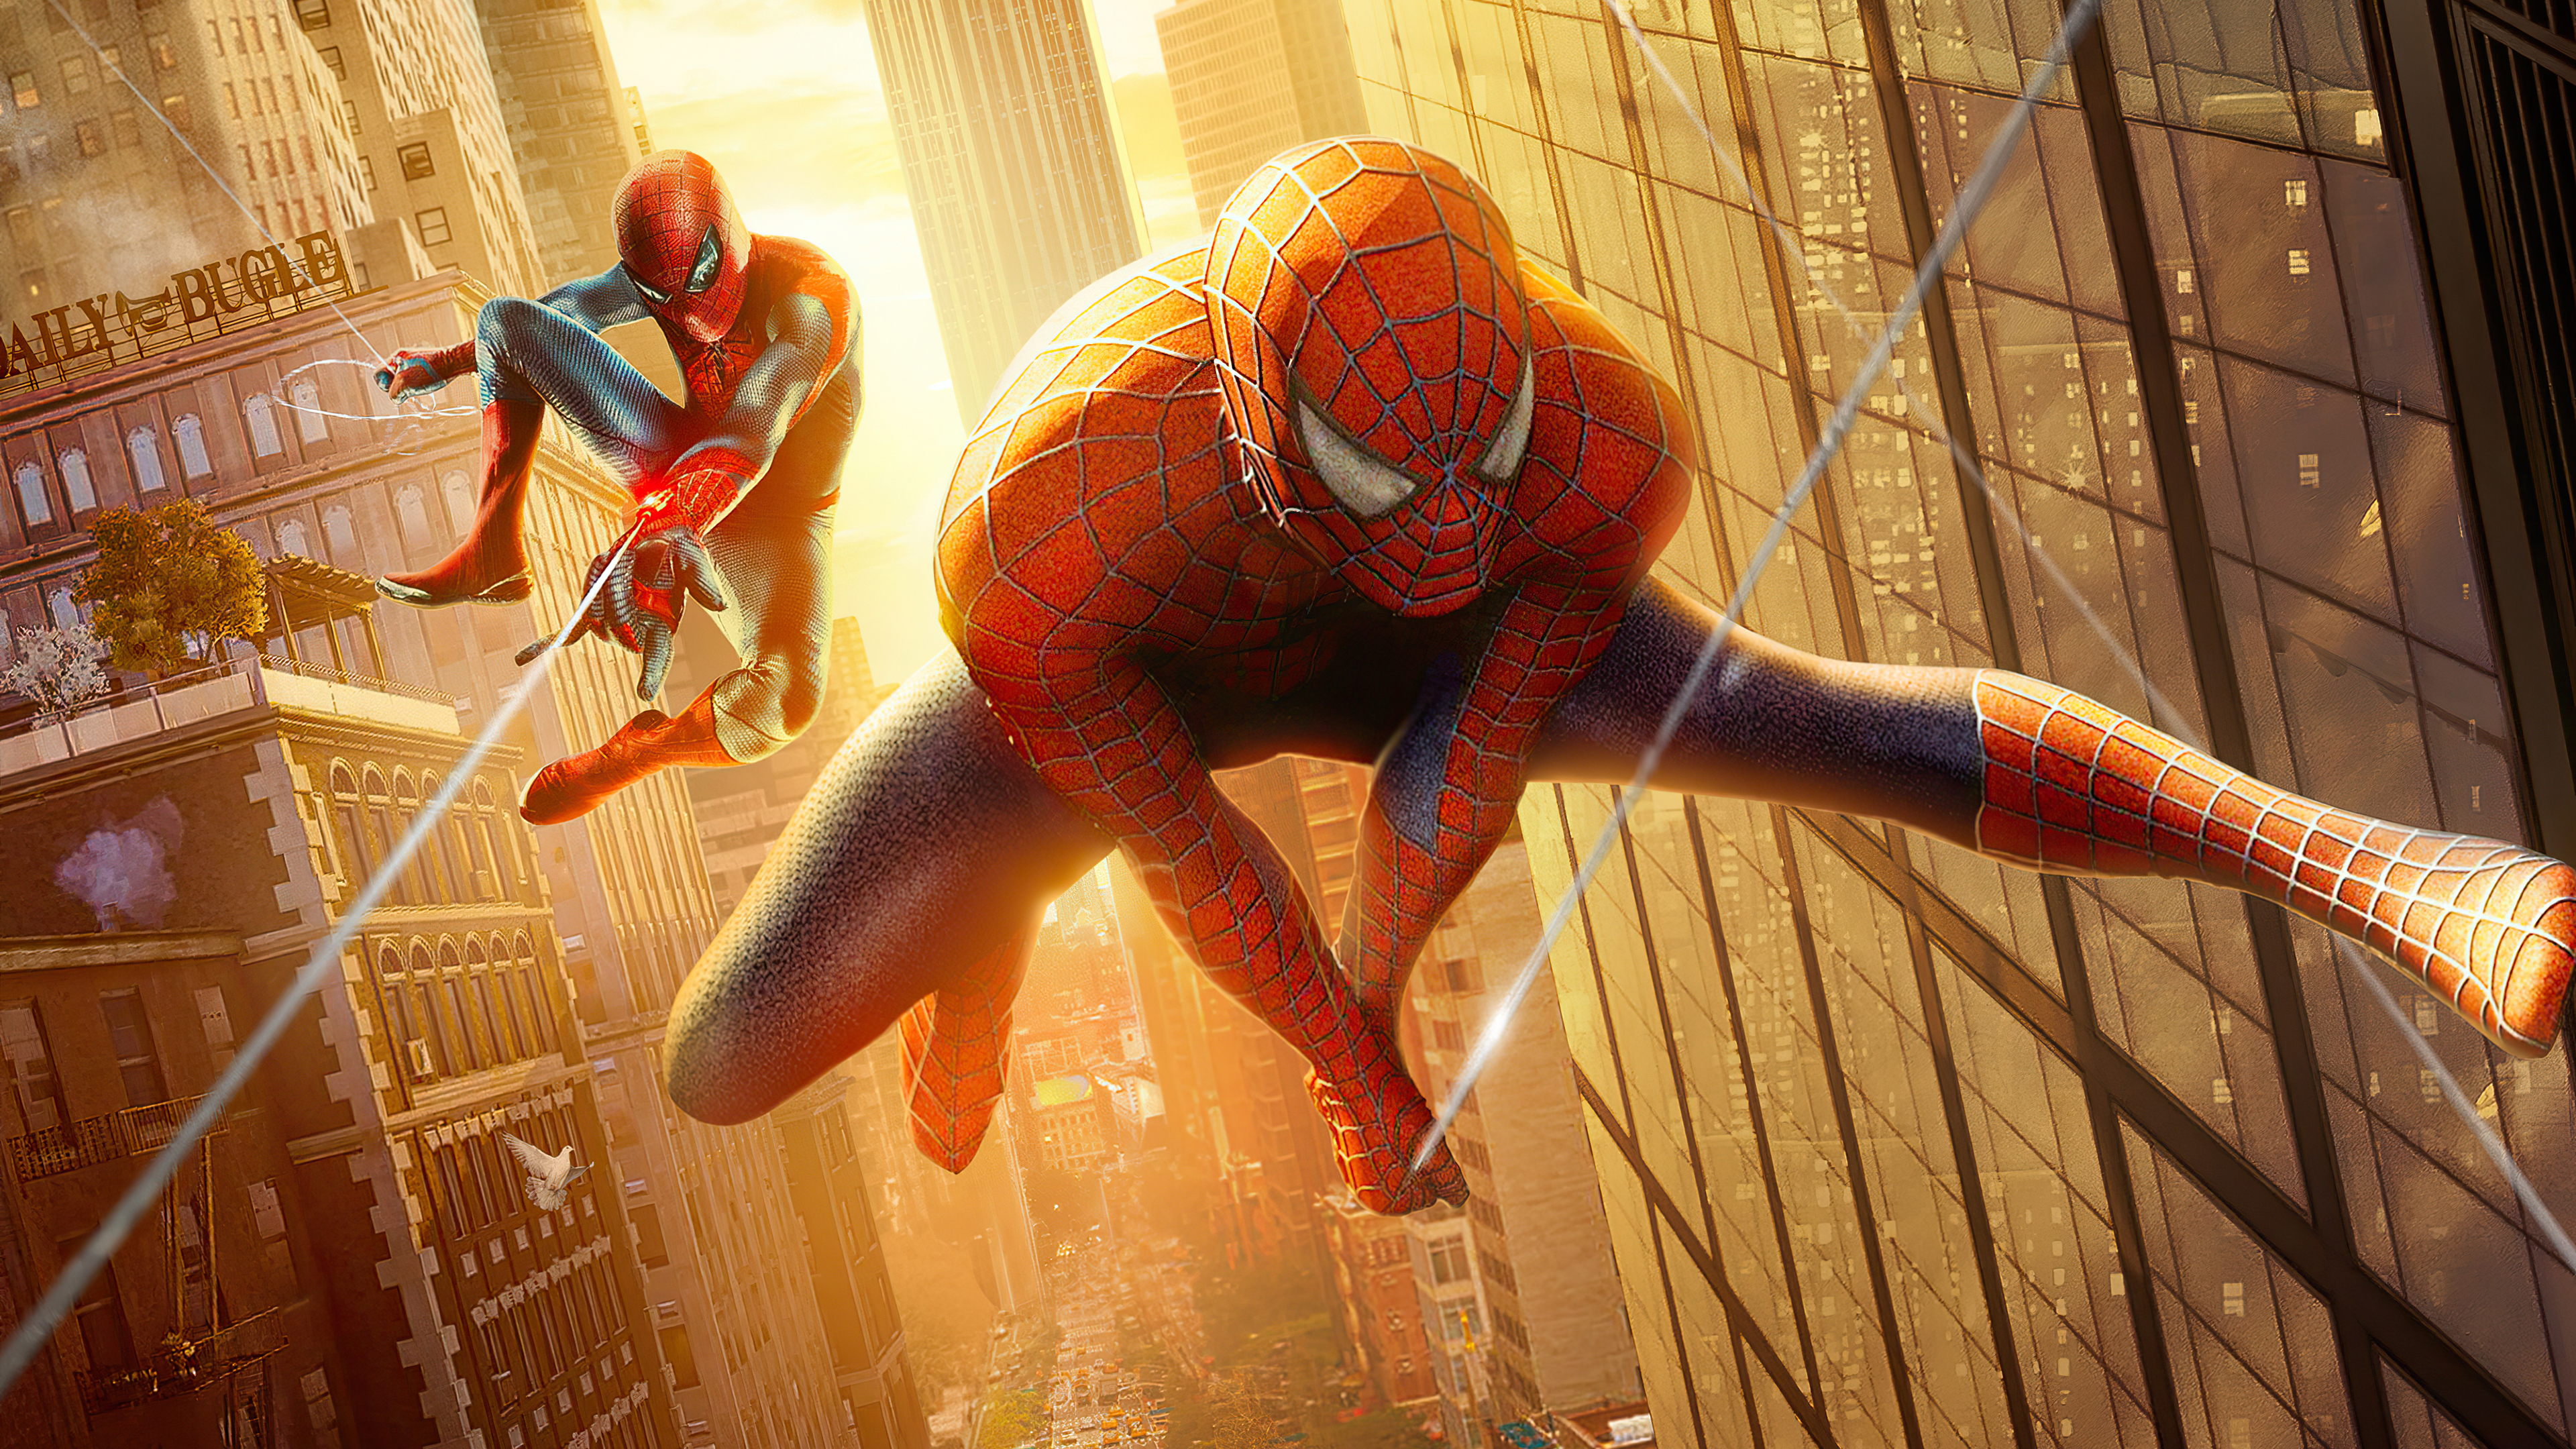 spiderman 3 into the spider verse poster 4k 1616955881 - Spiderman 3 Into The Spider Verse Poster 4k - Spiderman 3 Into The Spider Verse Poster 4k wallpapers